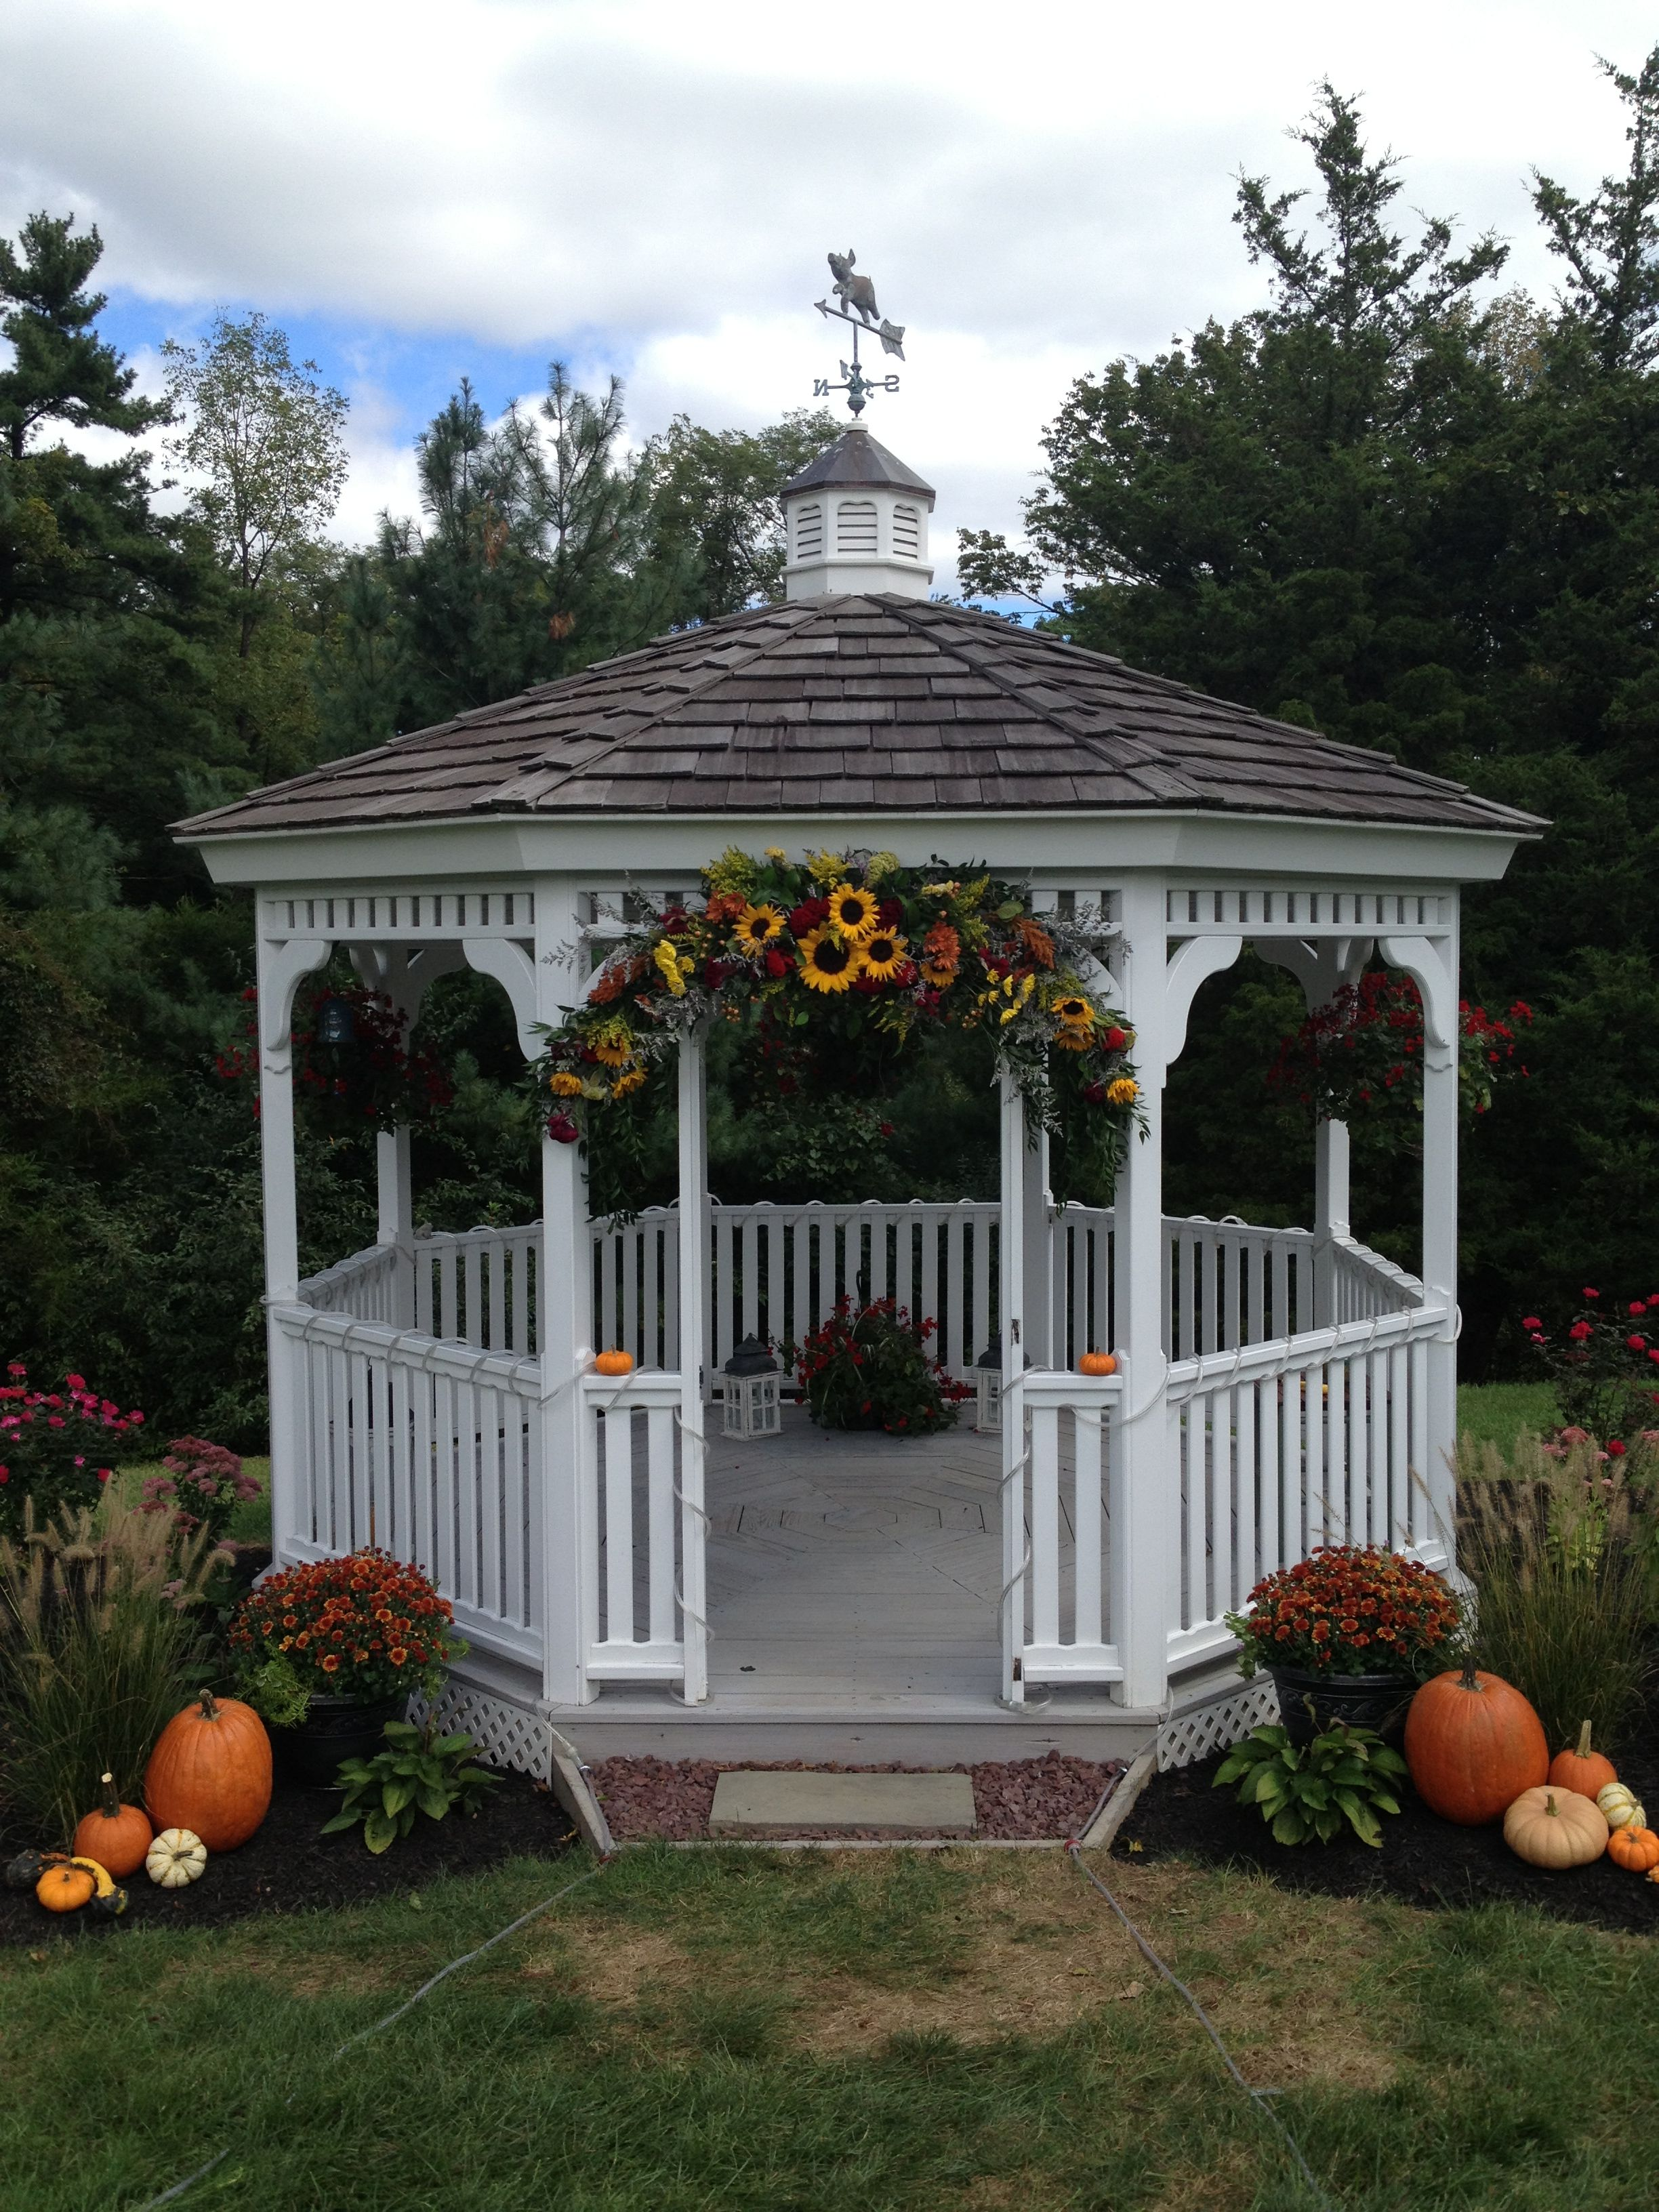 about gazebo wedding decorations on pinterest wedding gazebo gazebo